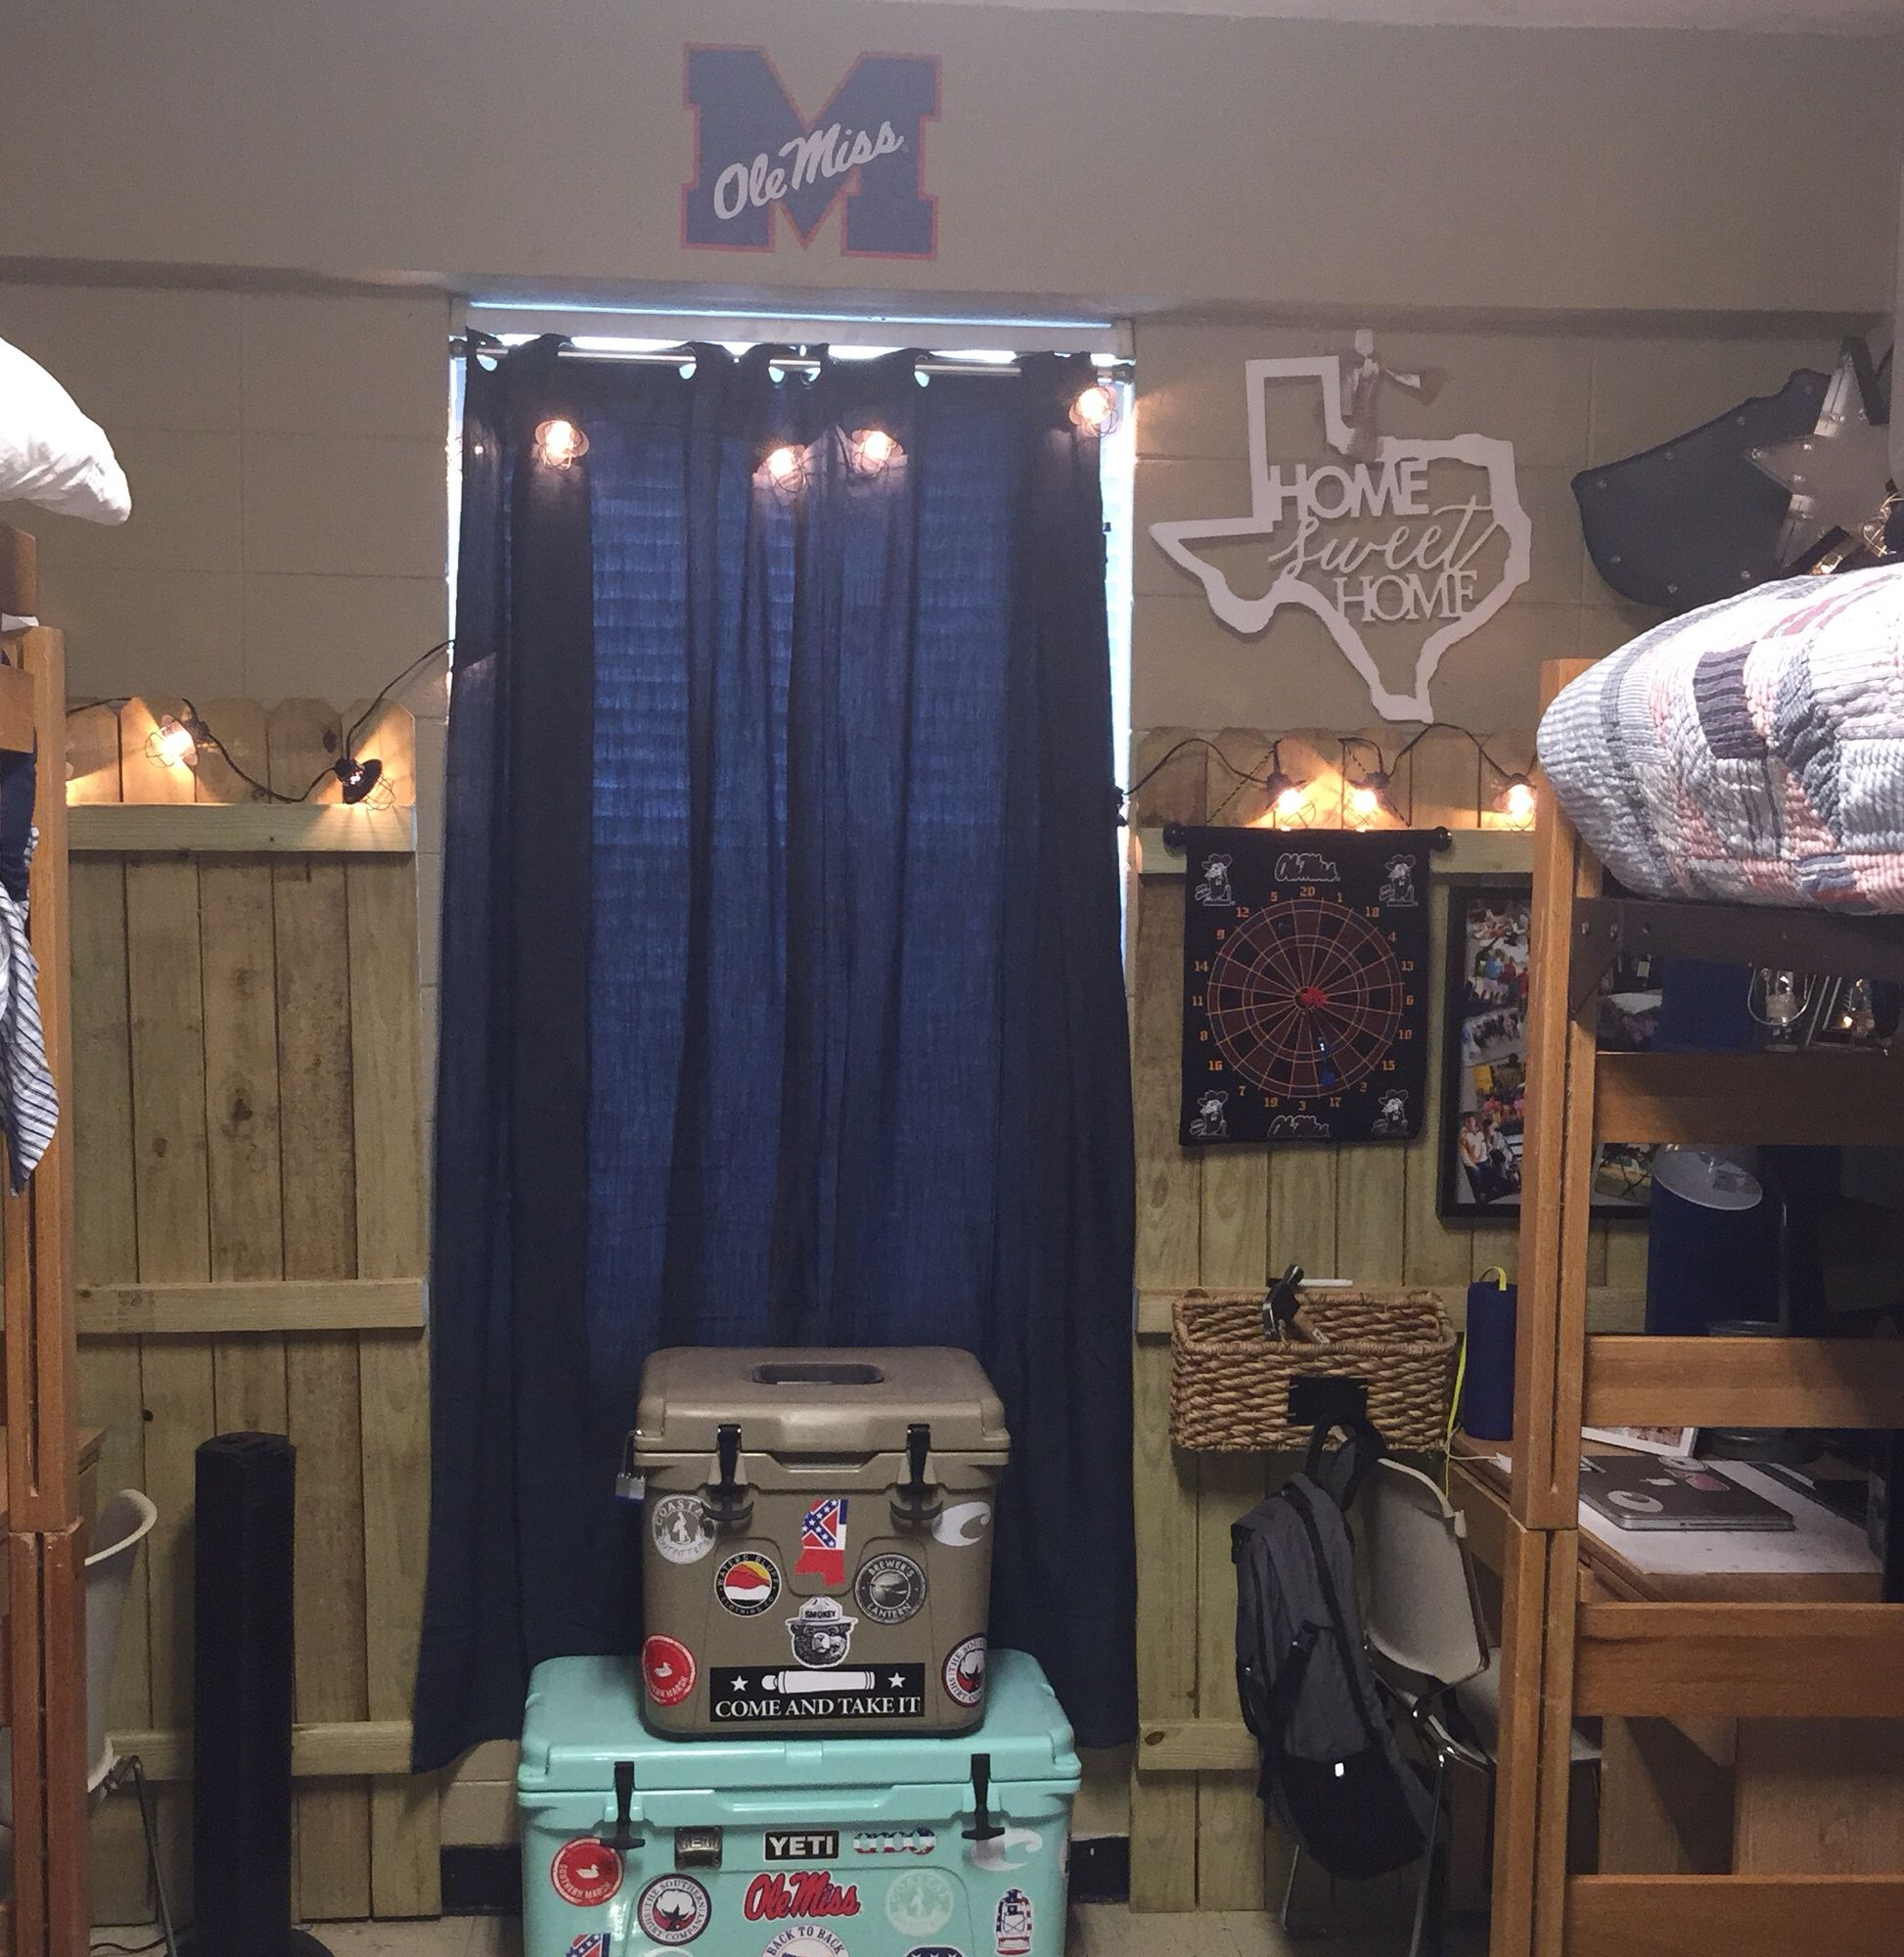 Cool Dorm Room Ideas Ole Miss Guys in 2019 Guy dorm